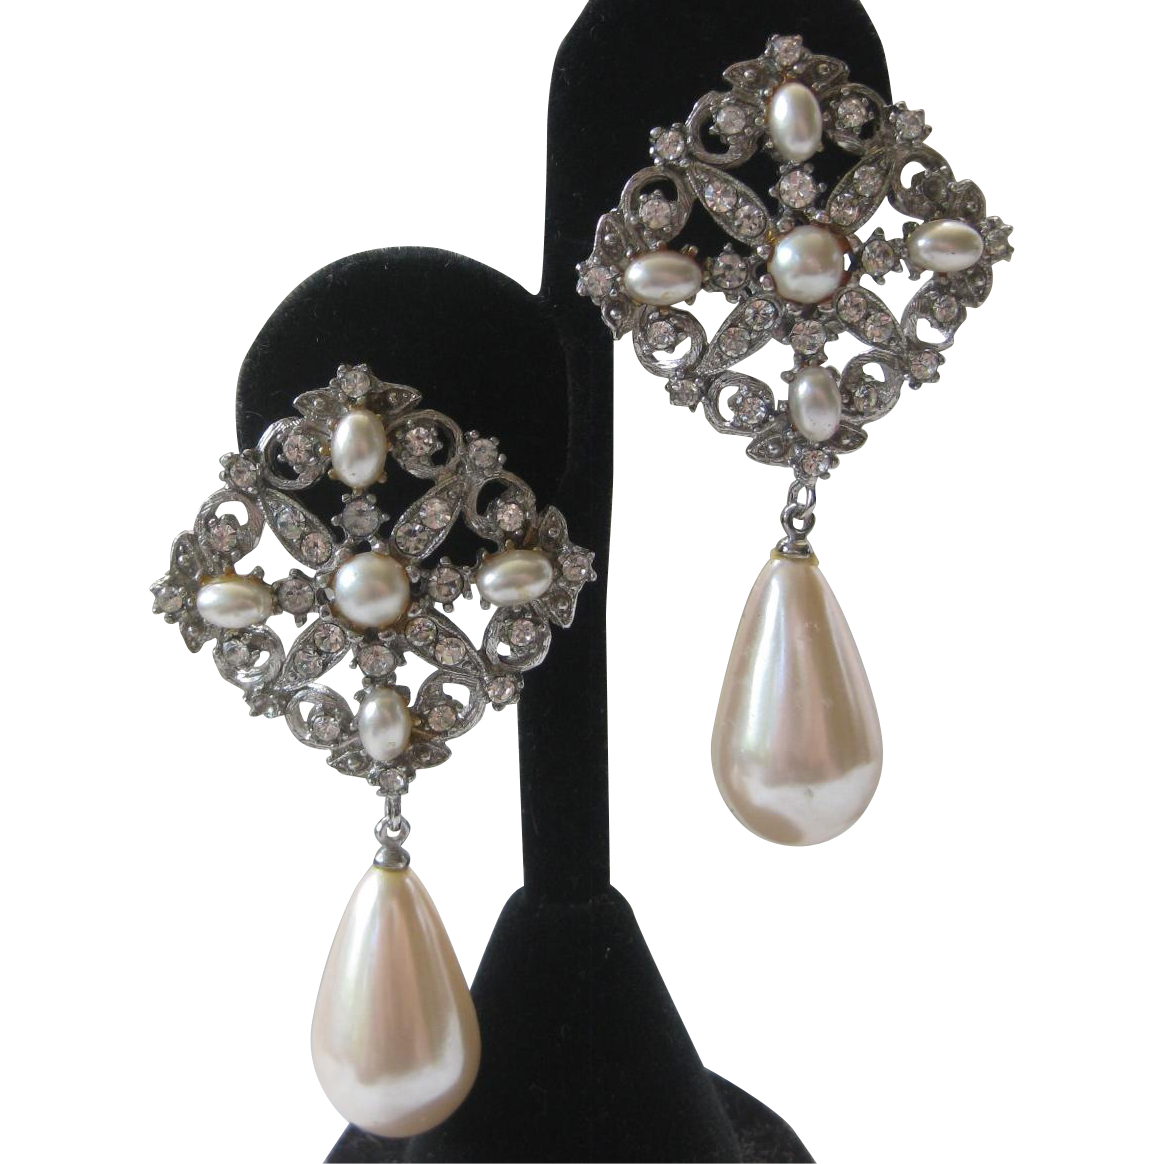 RICHELIEU Beautiful Rhinestones & Pearls Vintage Drop Earrings